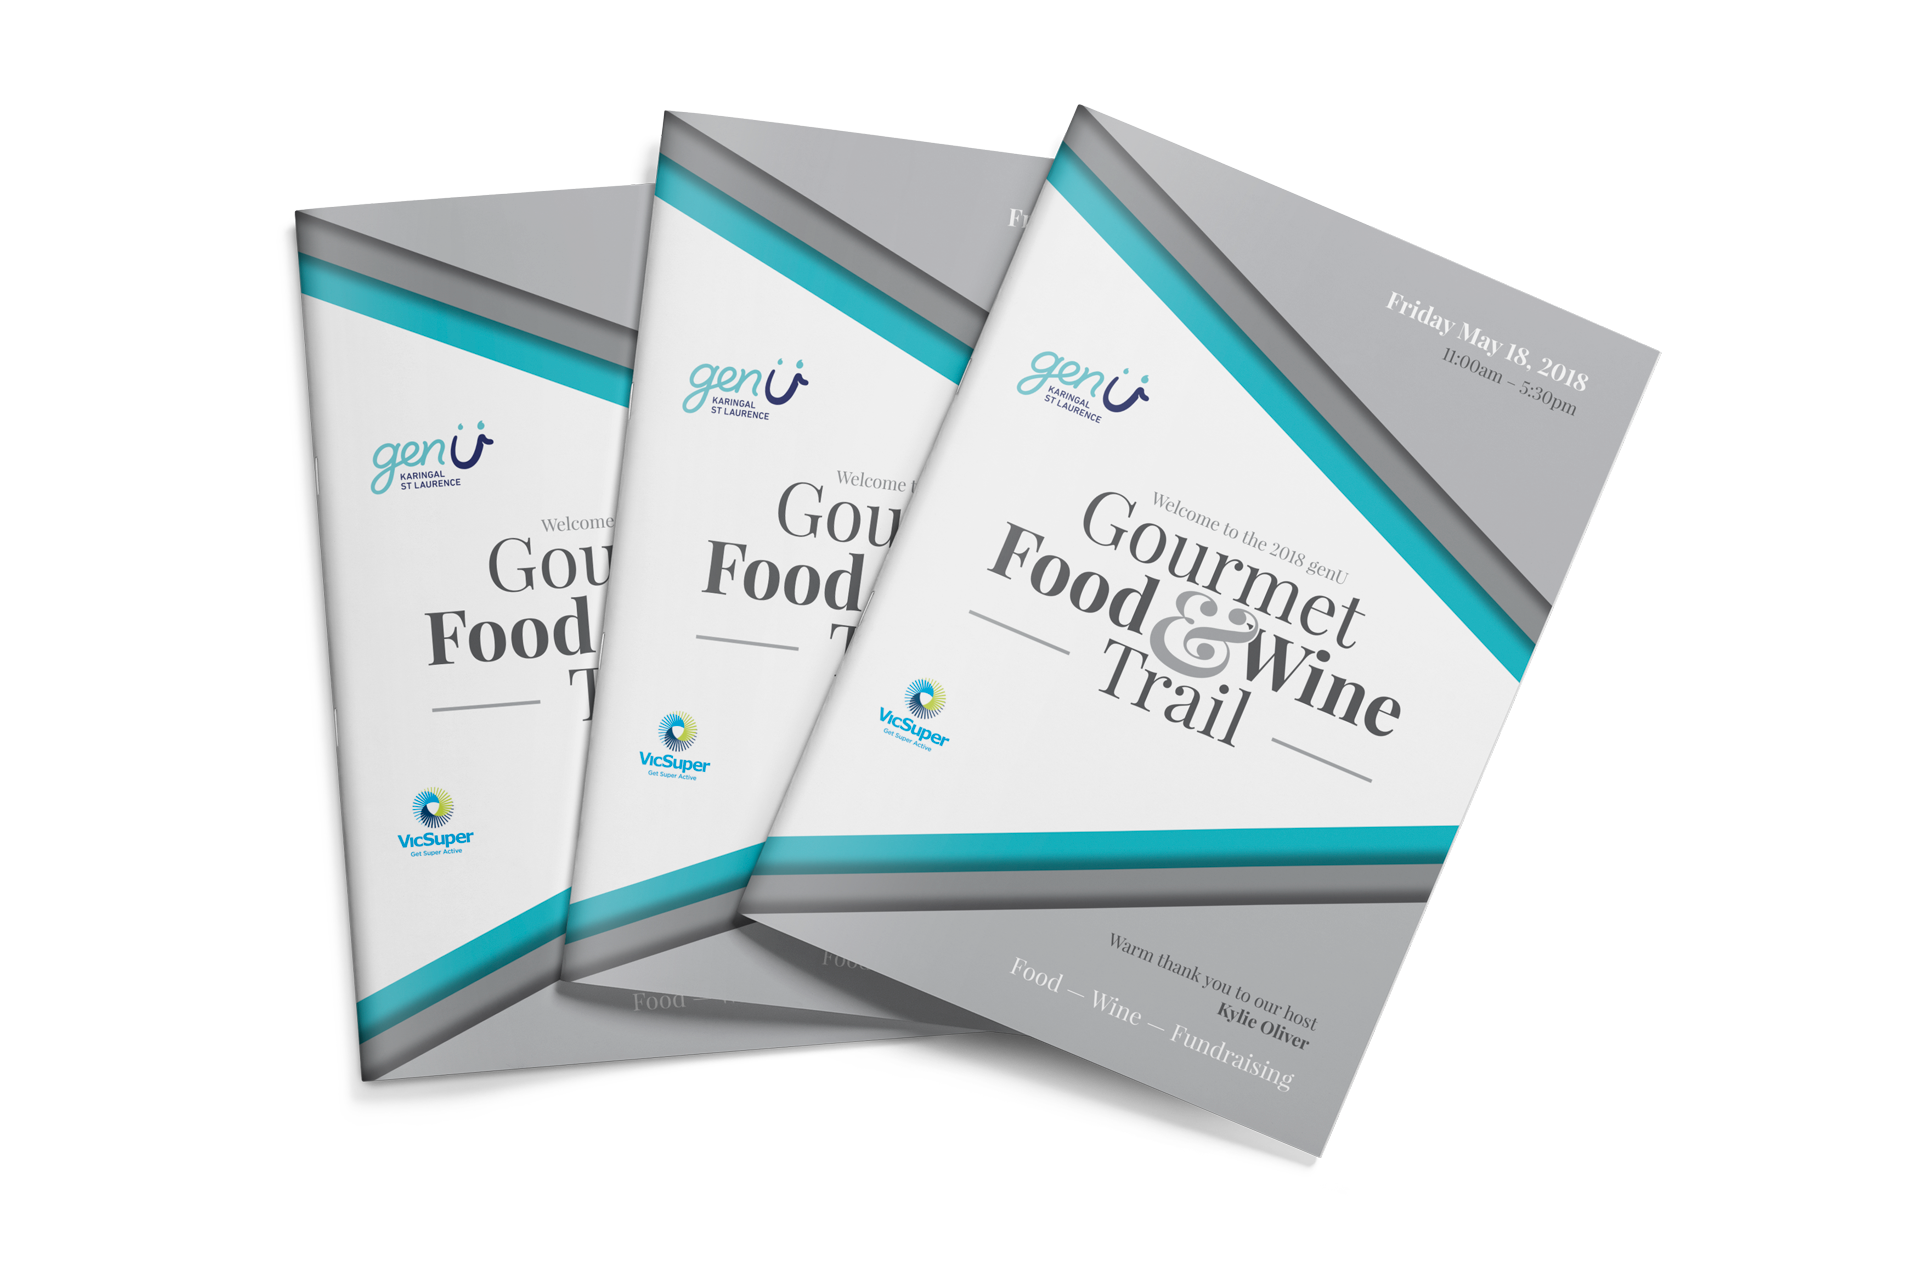 Gourmet Food & Wine Trail 2018 event booklets